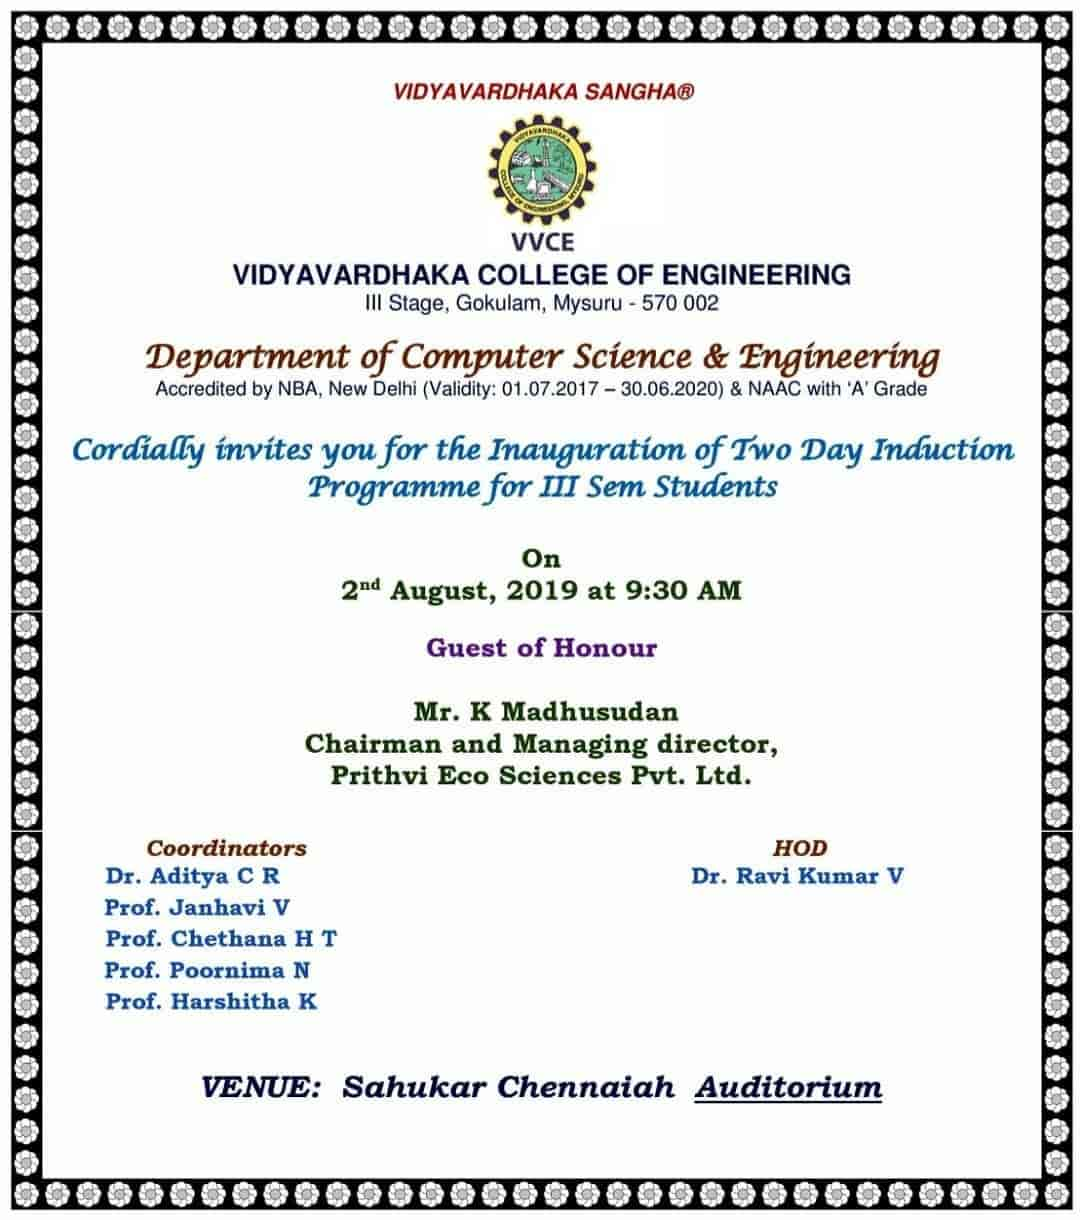 Vidyavardhaka College Of Engineering, Gokulam - Engineering